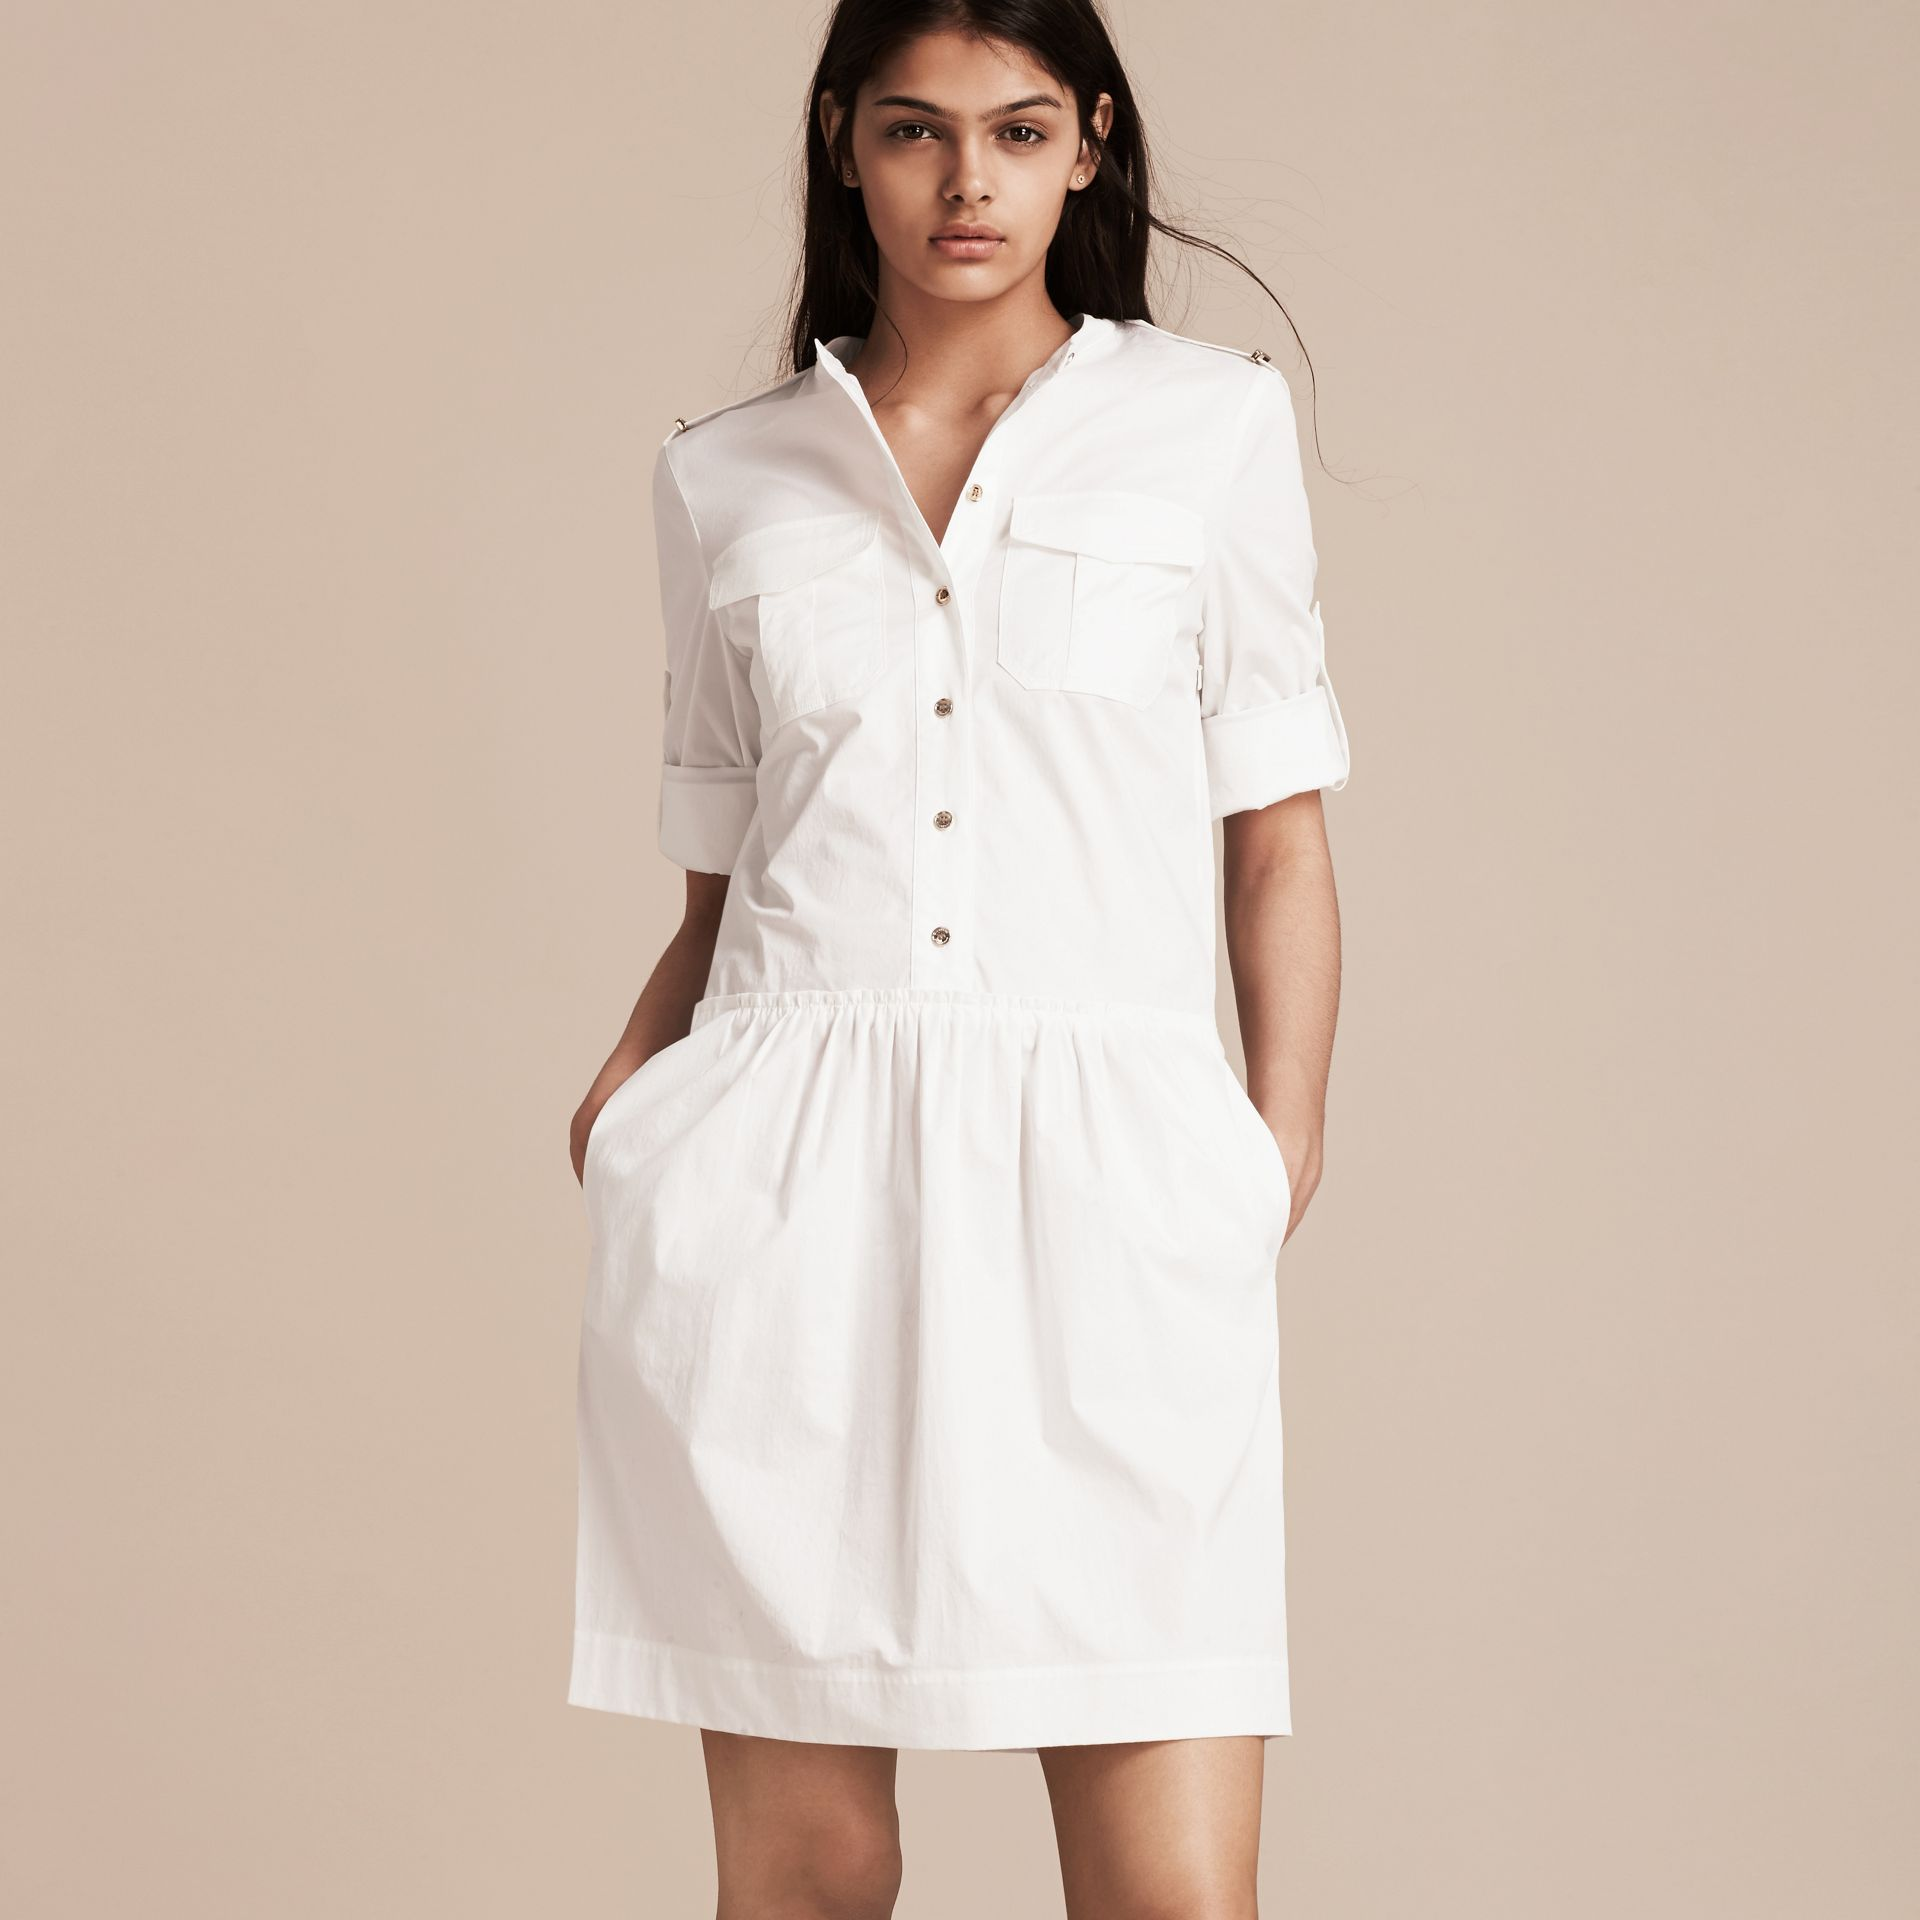 White Military-inspired Cotton Blend Shirt Dress White - gallery image 6